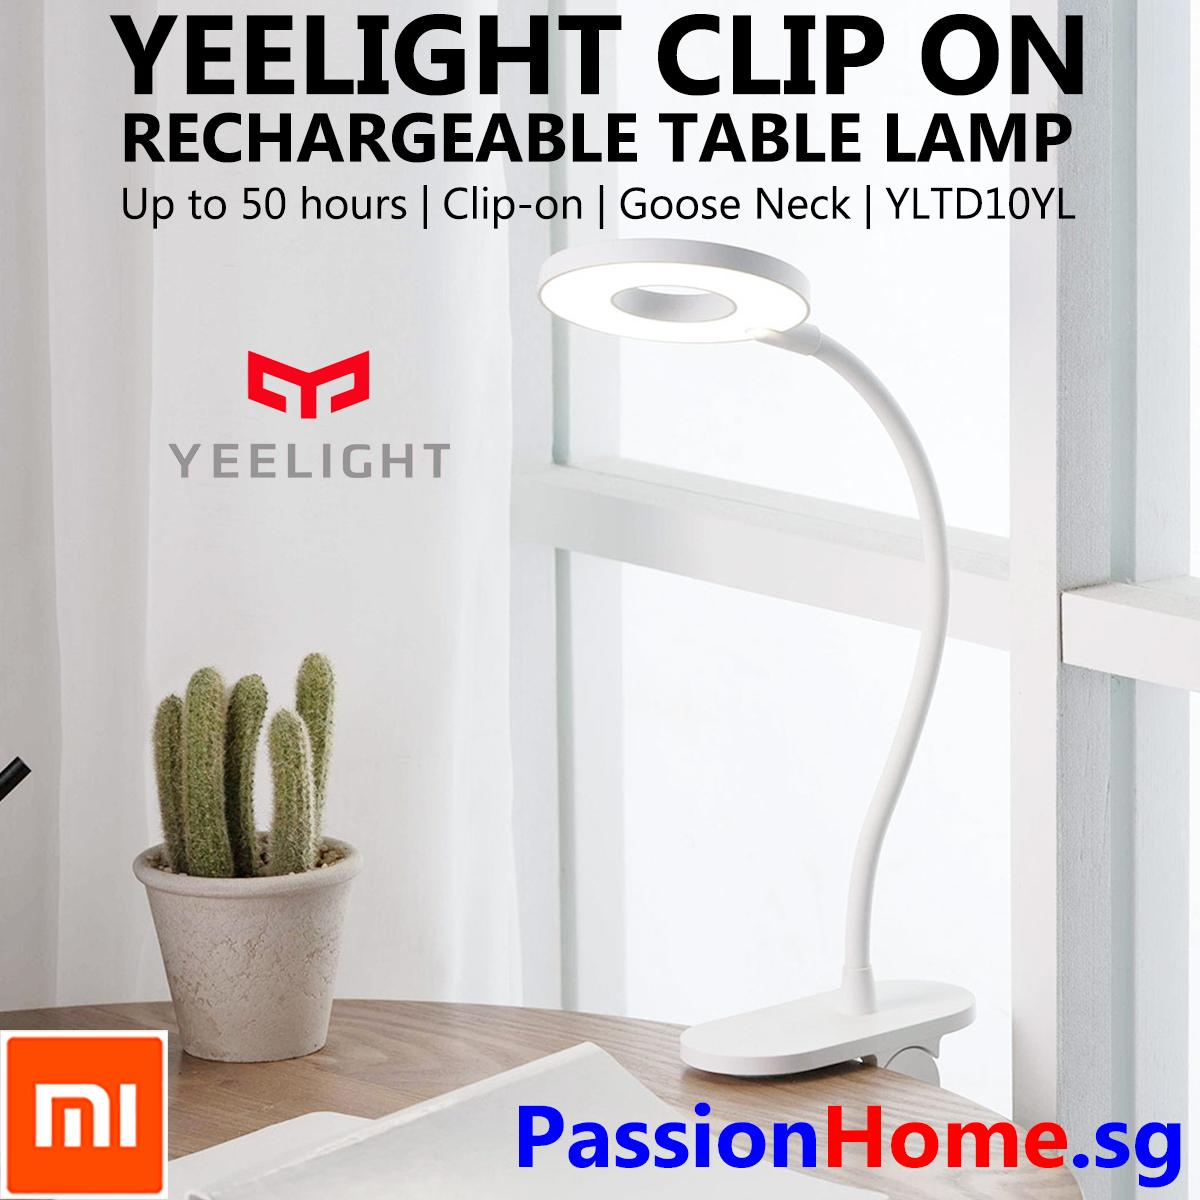 Xiaomi Yeelight LED Rechargeable Table Clip On Lamp 2019 - White Desk Clamp Lights 5W 100 lumens - Three Modes Reading Work Lighting Study Night USB Flexible Touch Sensor Button Long Battery Life Portable Light - Kids Room Bedroom YLTD10YL PassionHome.sg